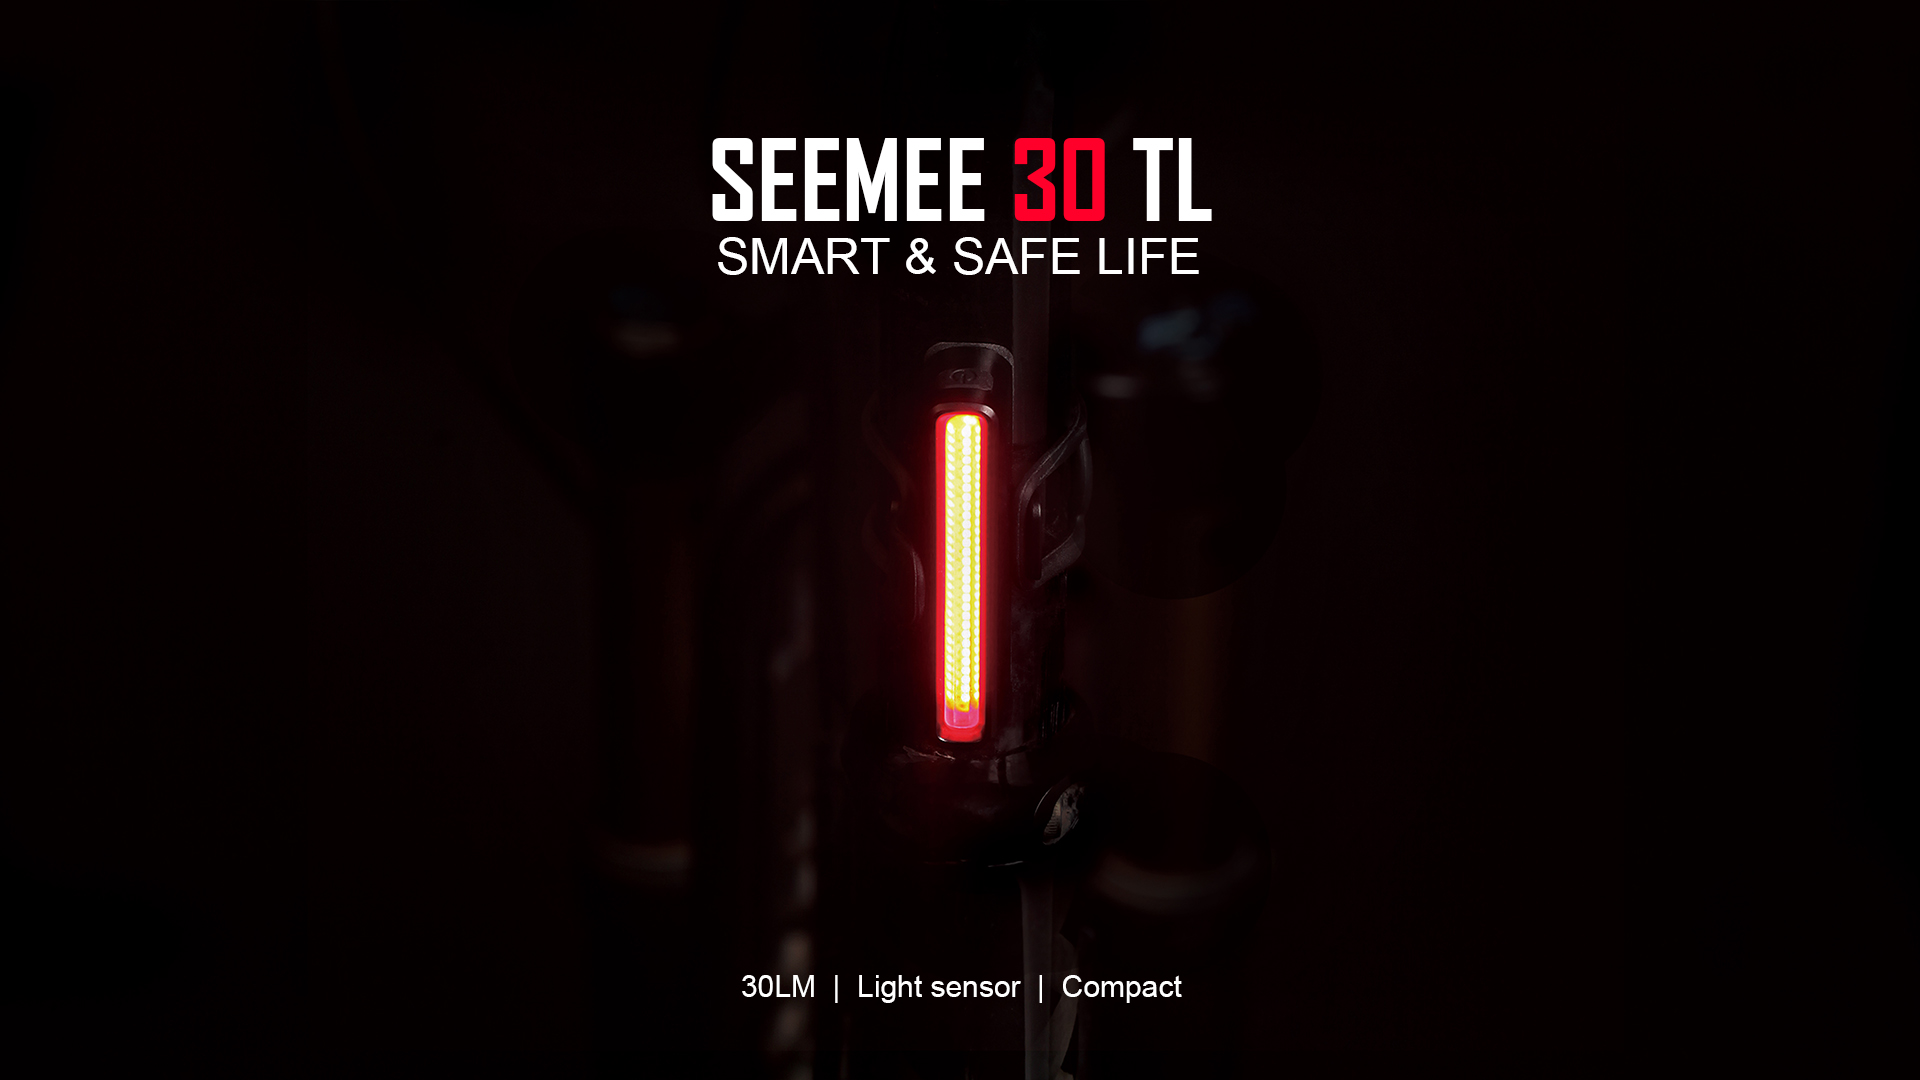 Smart & Safe Life SEEMEE 30 TL LED Bicycle Tail Light